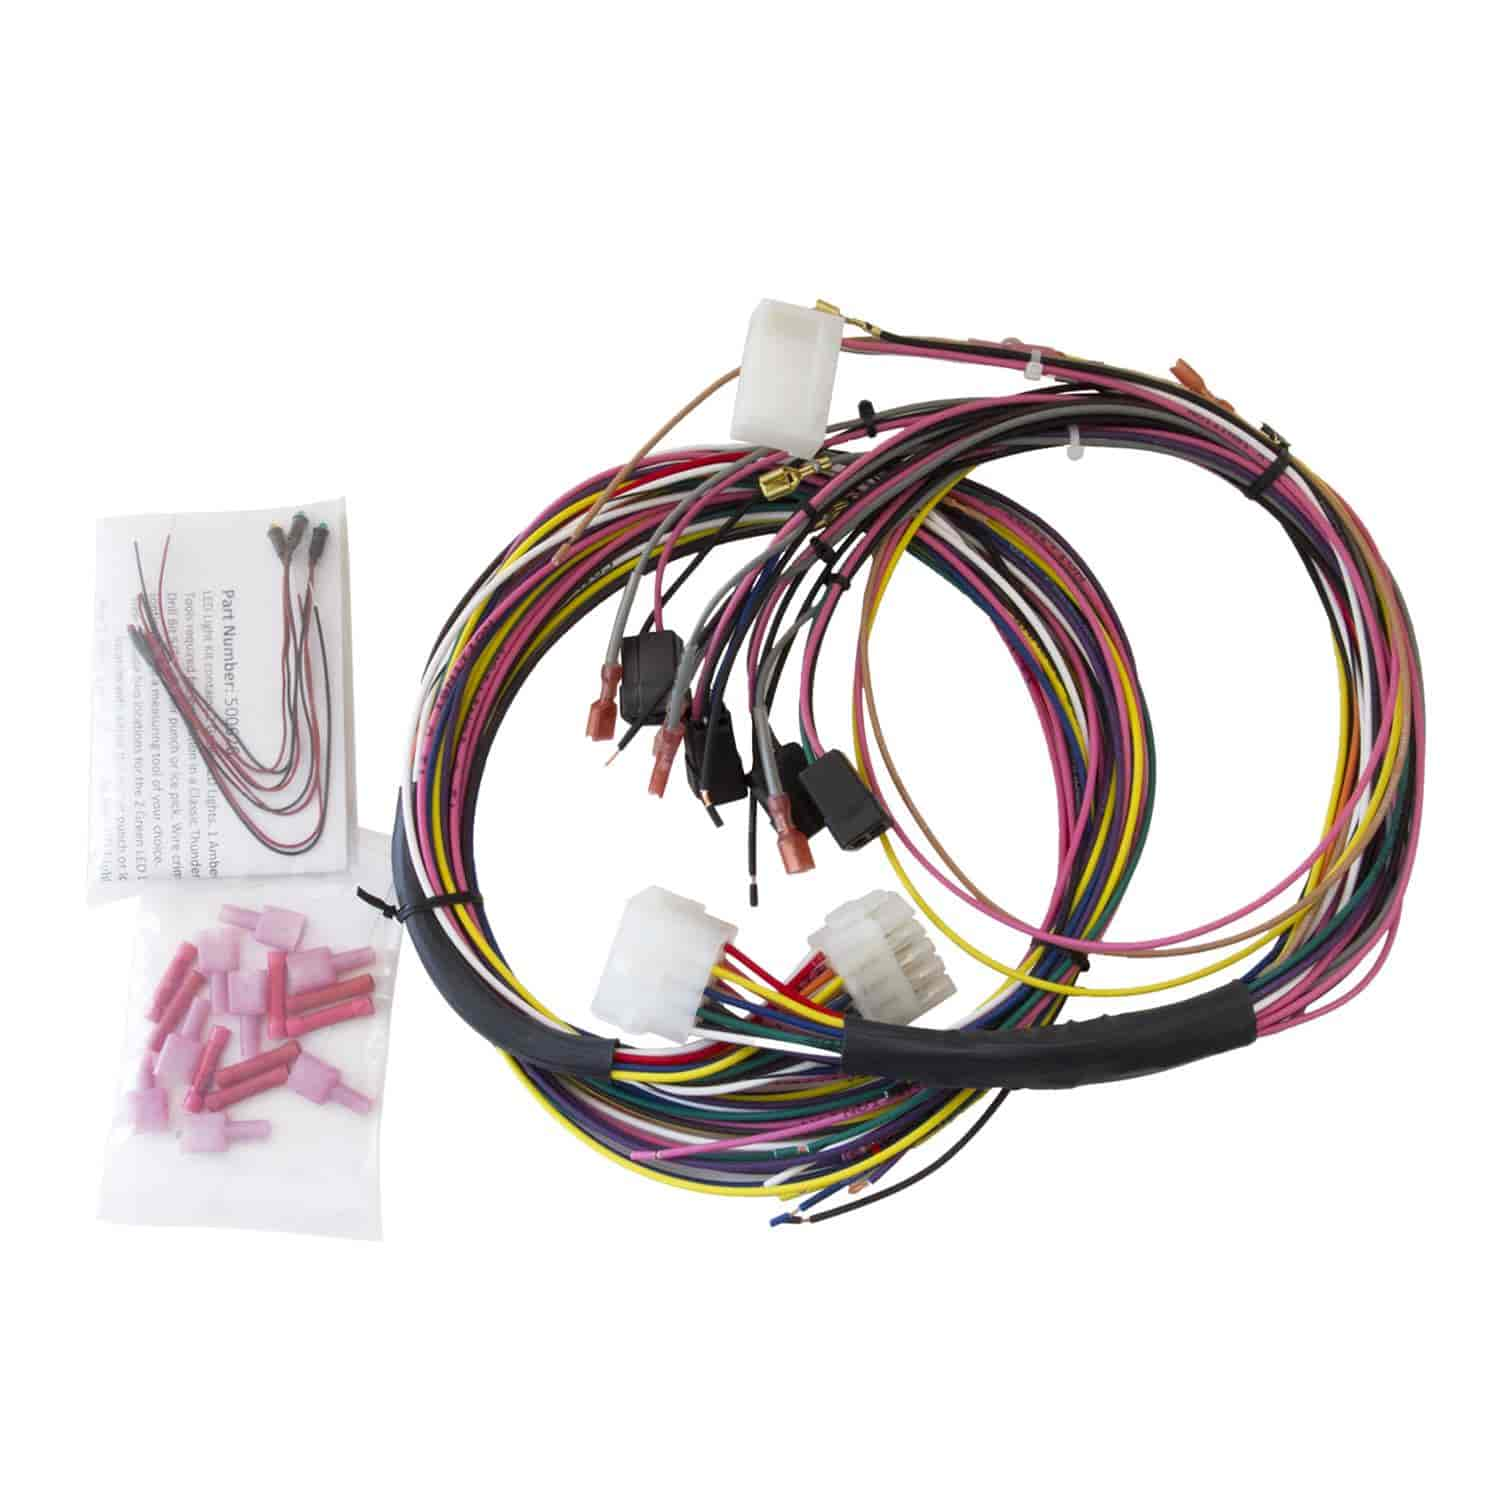 105 2198 auto meter 2198 replacement wiring harness universal jegs VW Wiring Harness Kits at aneh.co